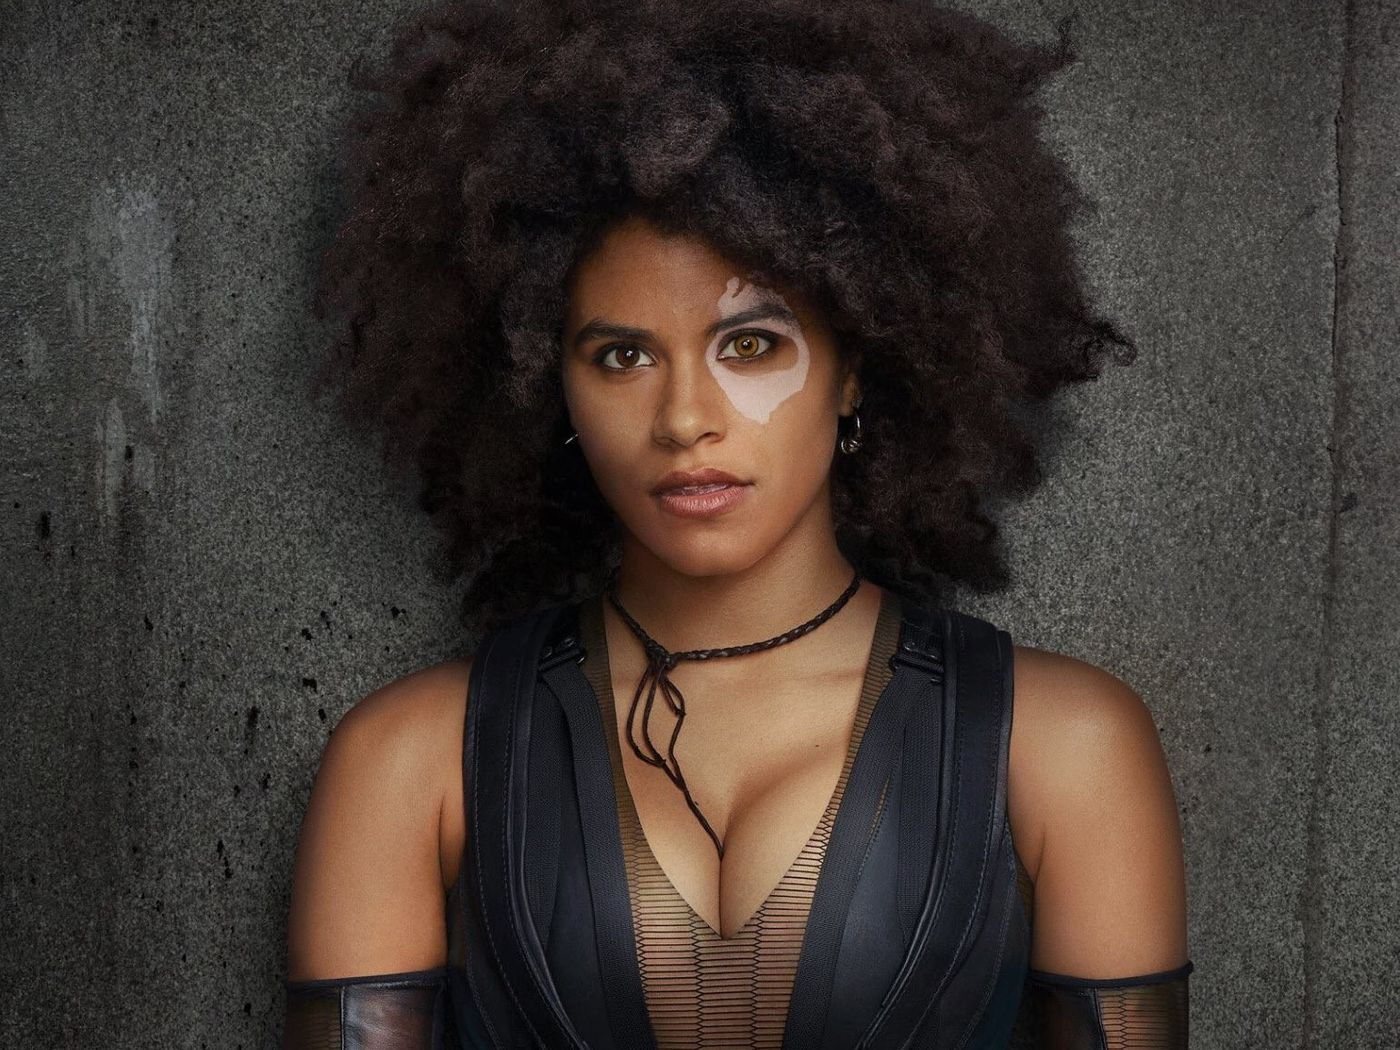 Deadpool 2 star Domino has lots of backstory for a spinoff movie - The Verge